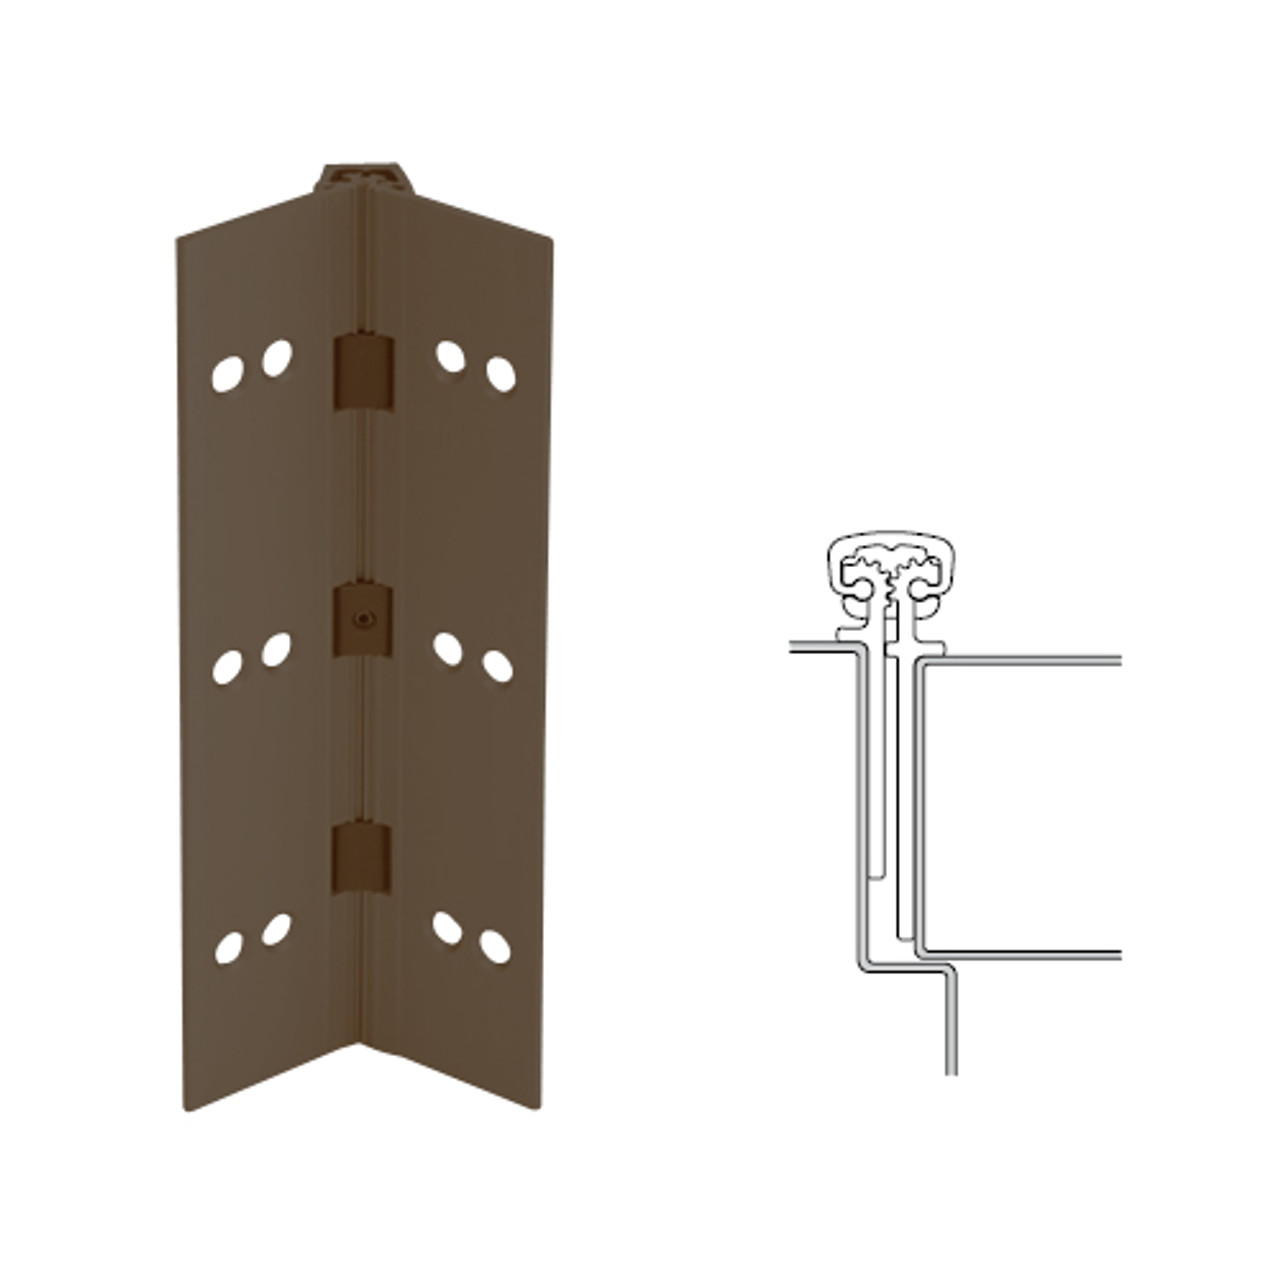 026XY-313AN-83-SECWDHM IVES Full Mortise Continuous Geared Hinges with Security Screws - Hex Pin Drive in Dark Bronze Anodized